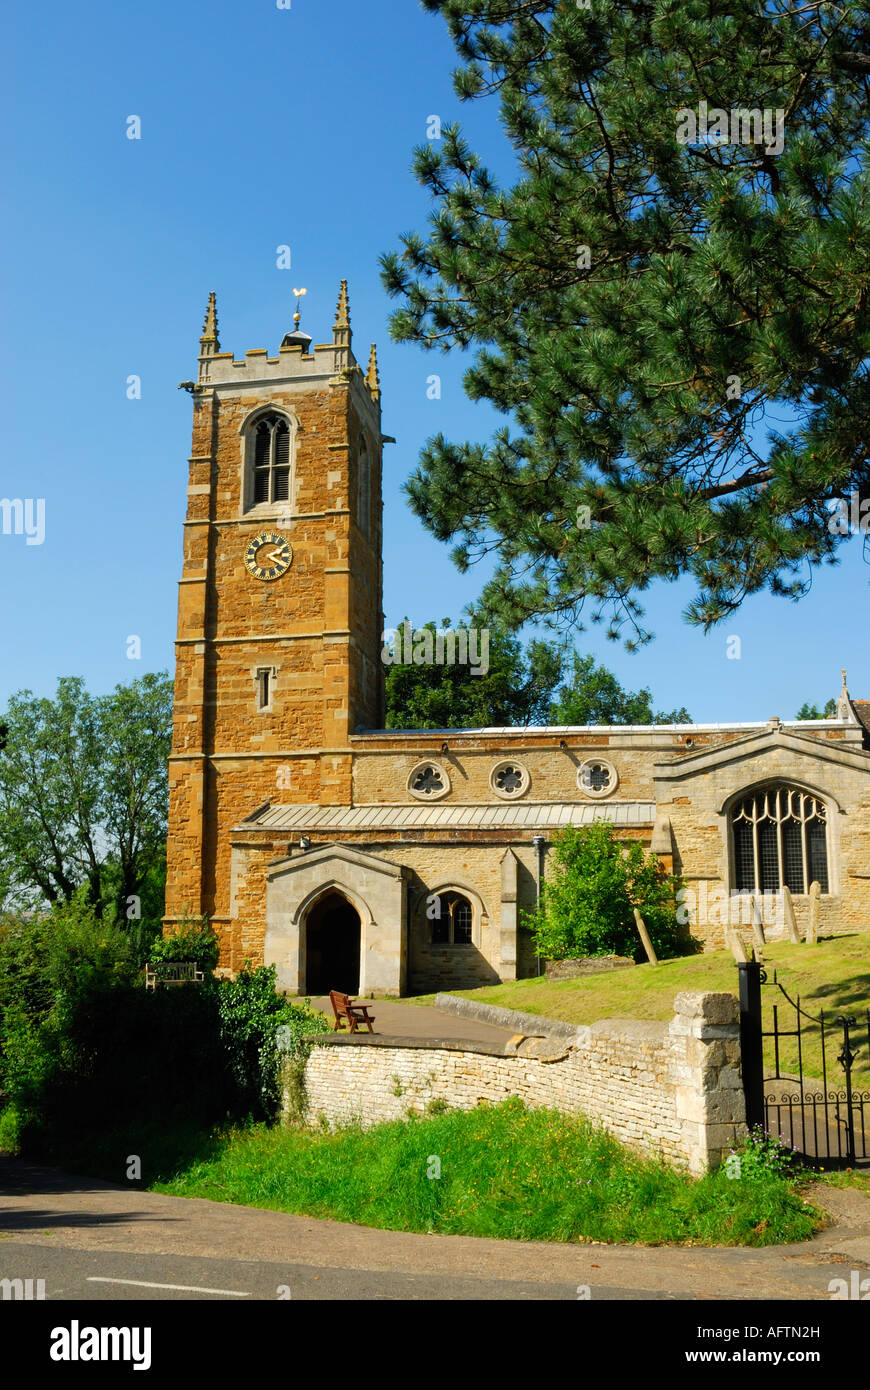 Church of St James at Gretton near Corby Northamptonshire England - Stock Image